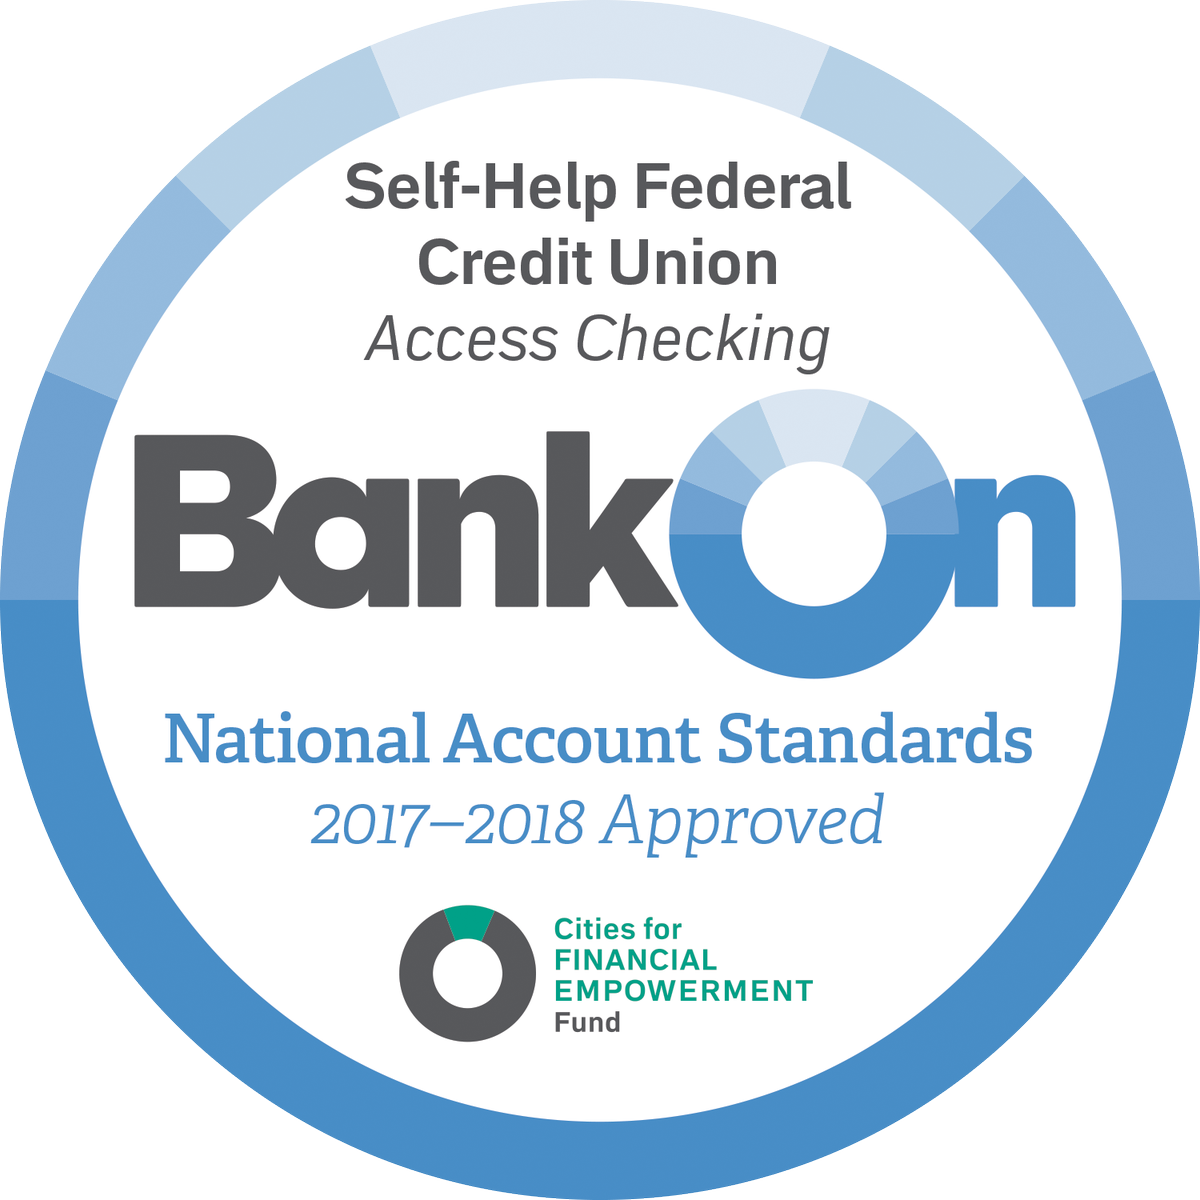 Thank you to @CFEfund and @SelfHelpFedCU for their support in helping us reach local communities. #BankOnLACounty #BankOnIt